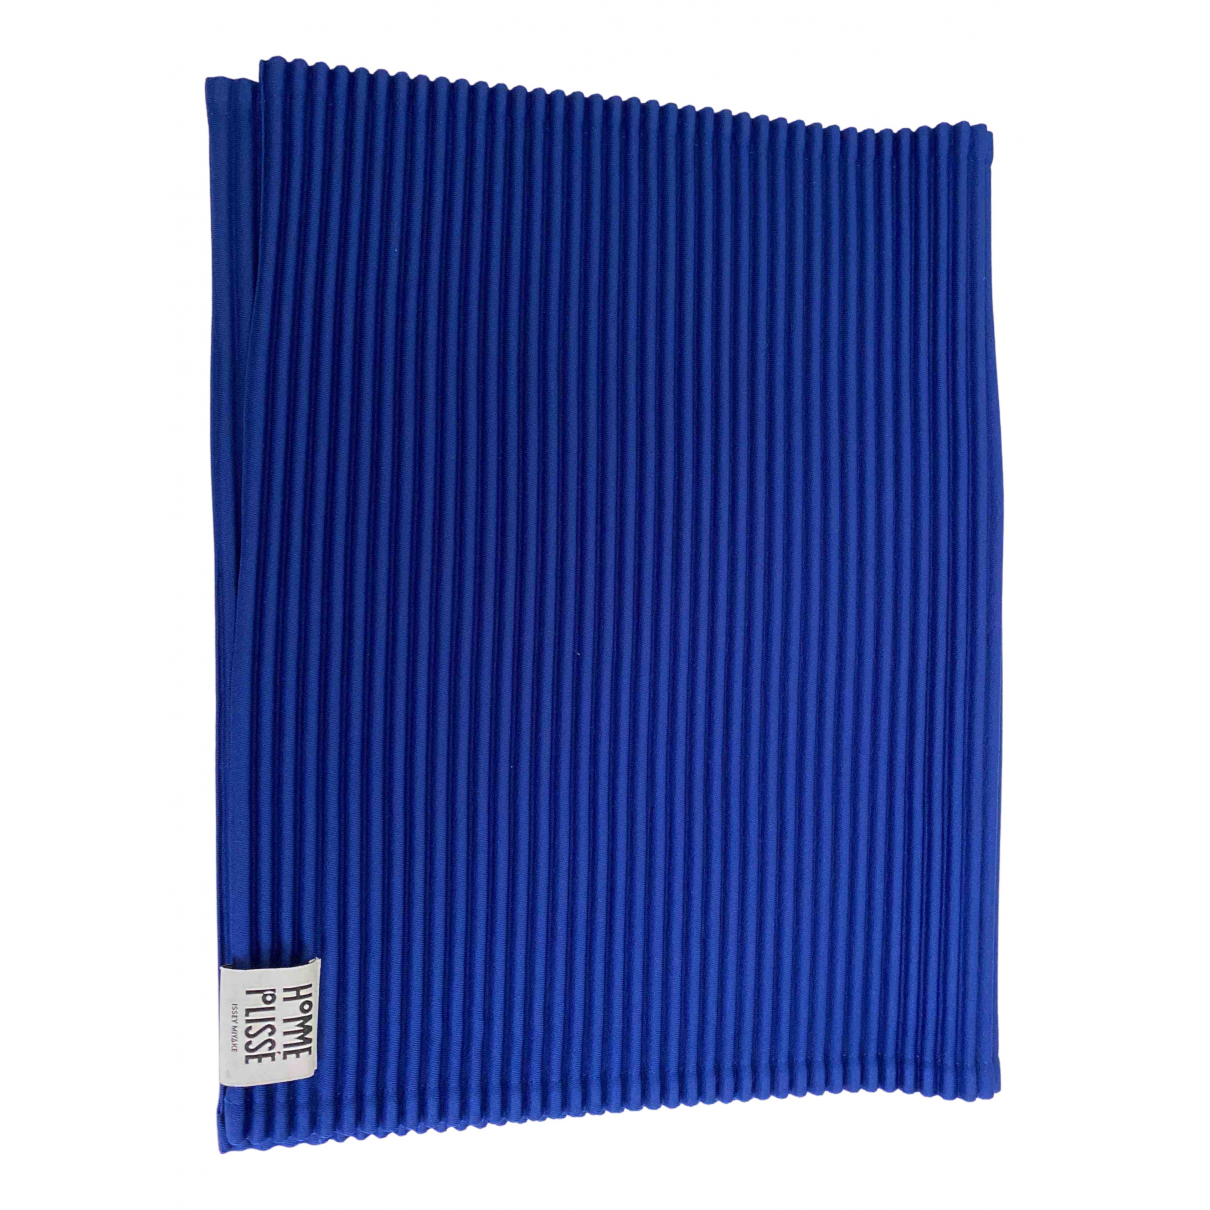 Issey Miyake - Petite maroquinerie   pour homme - bleu